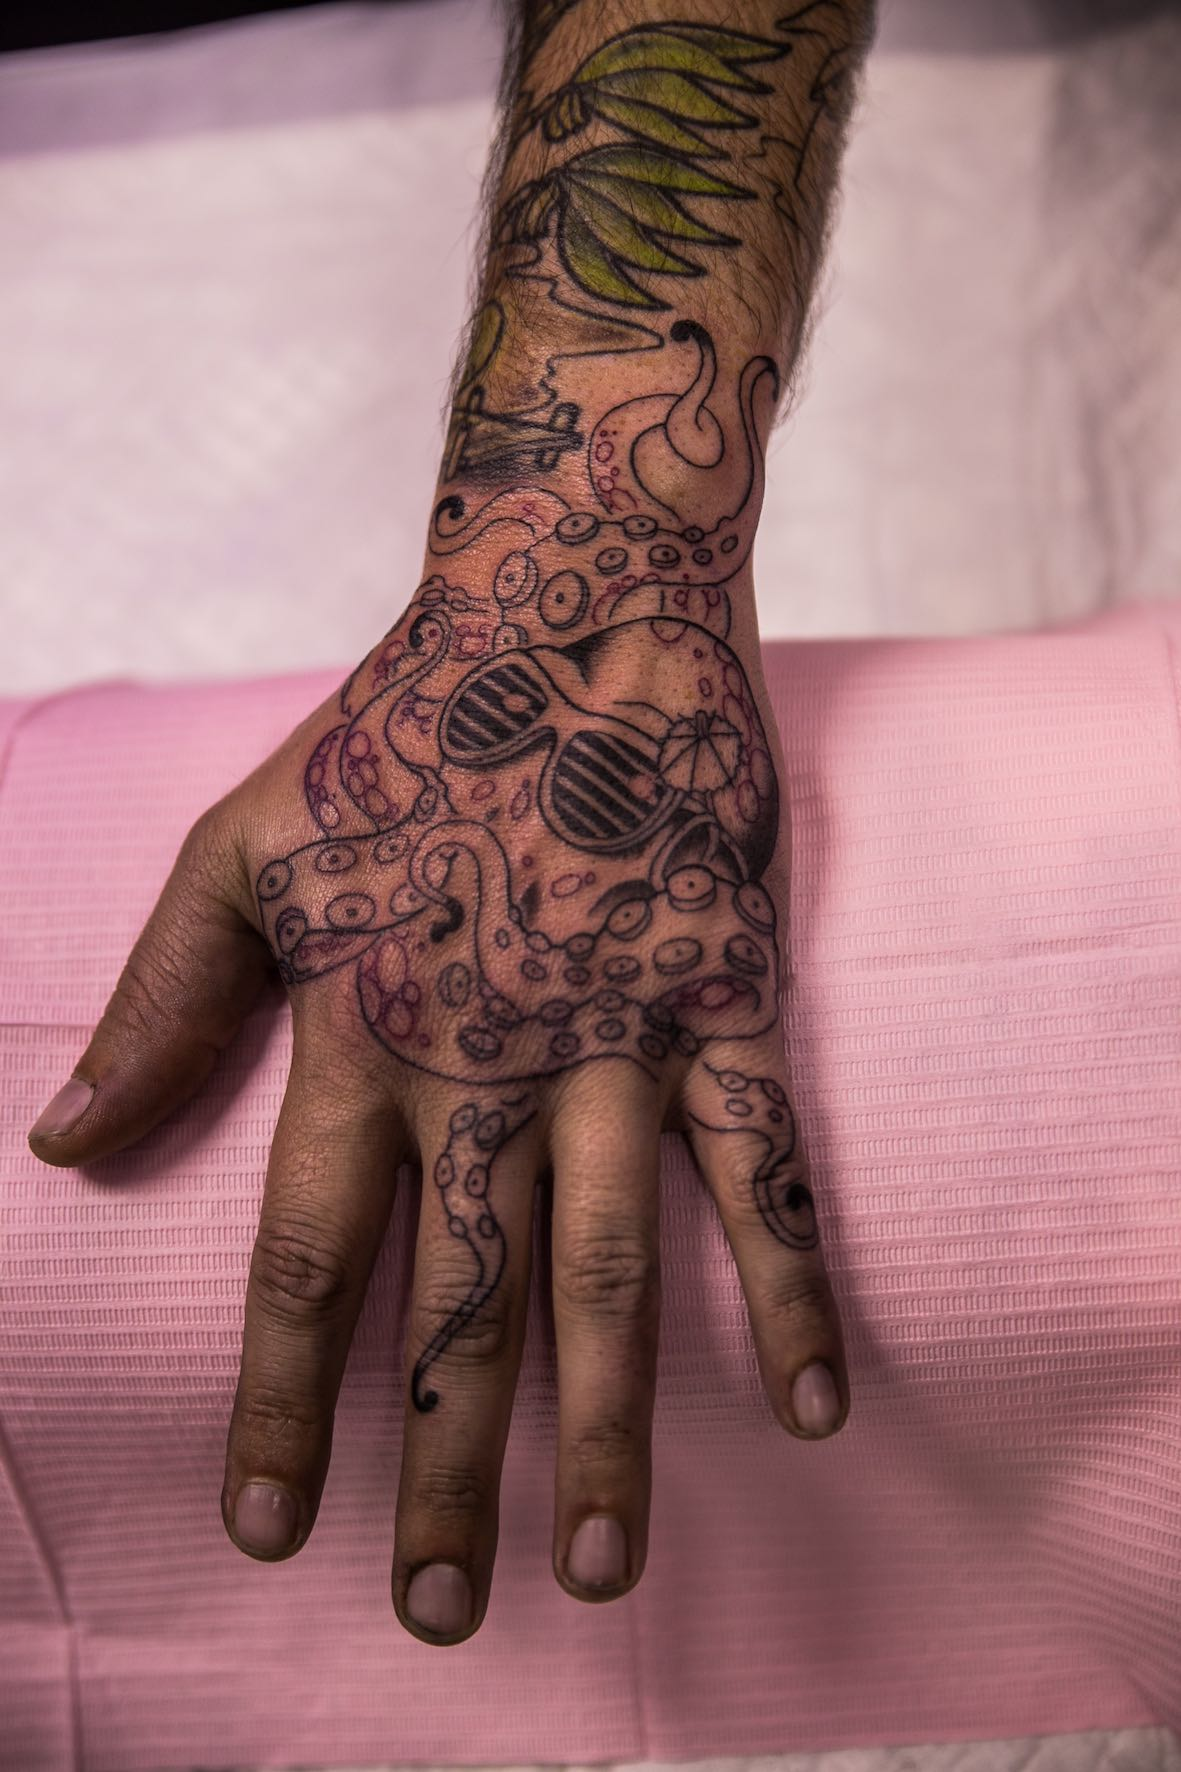 Near complete hand tattoo done by Chelsea-Rae Marsh